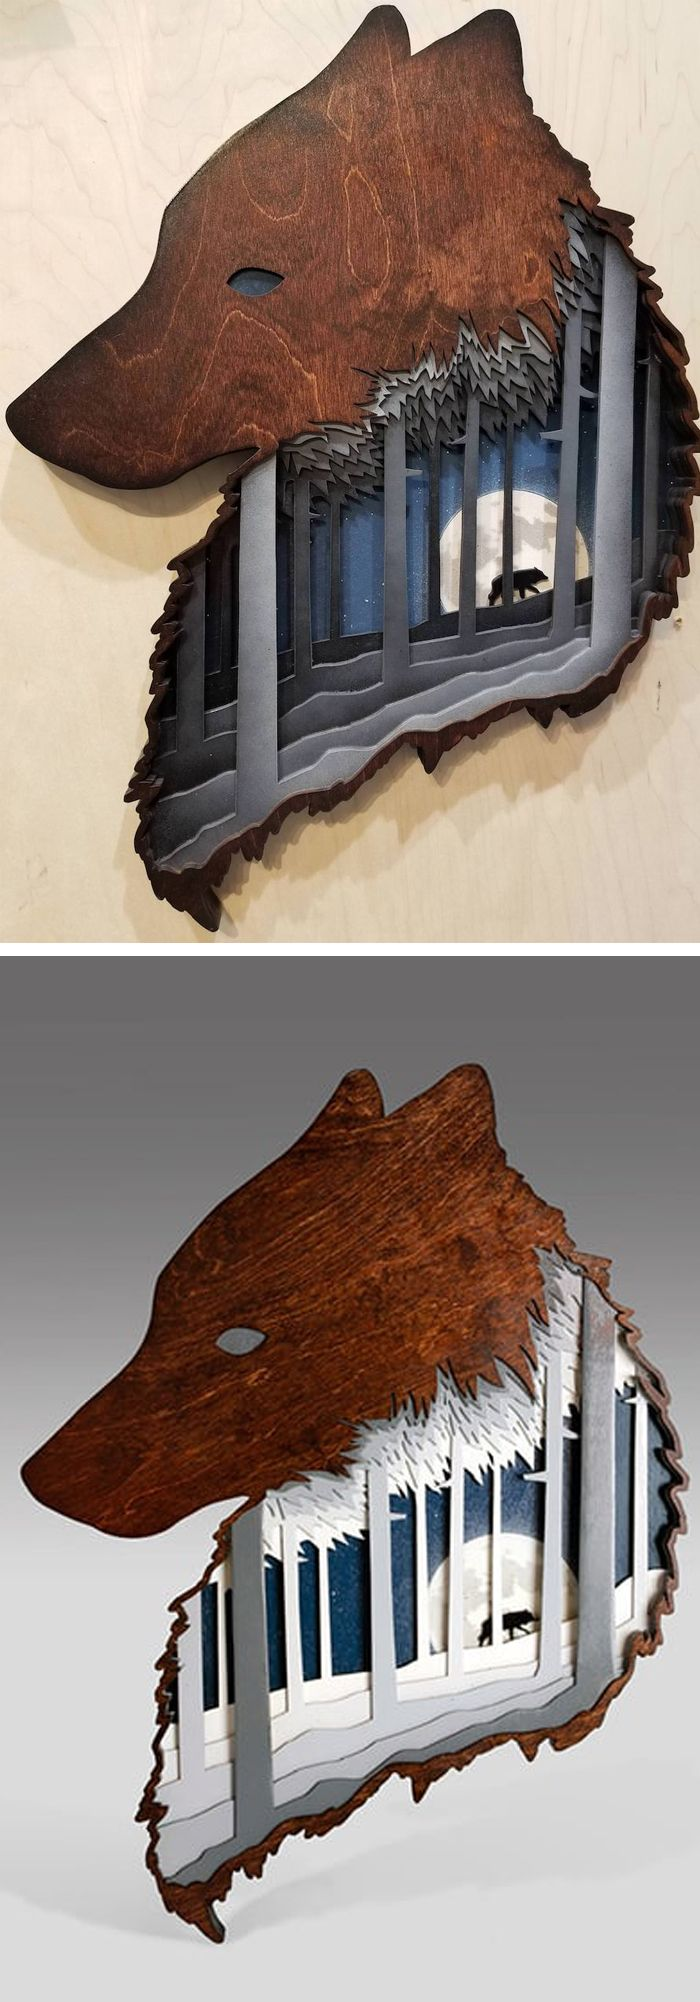 Artist Jason Pancoast hand-makes layered wood art and shadow boxes that depict whimsical, nature-inspired narratives.